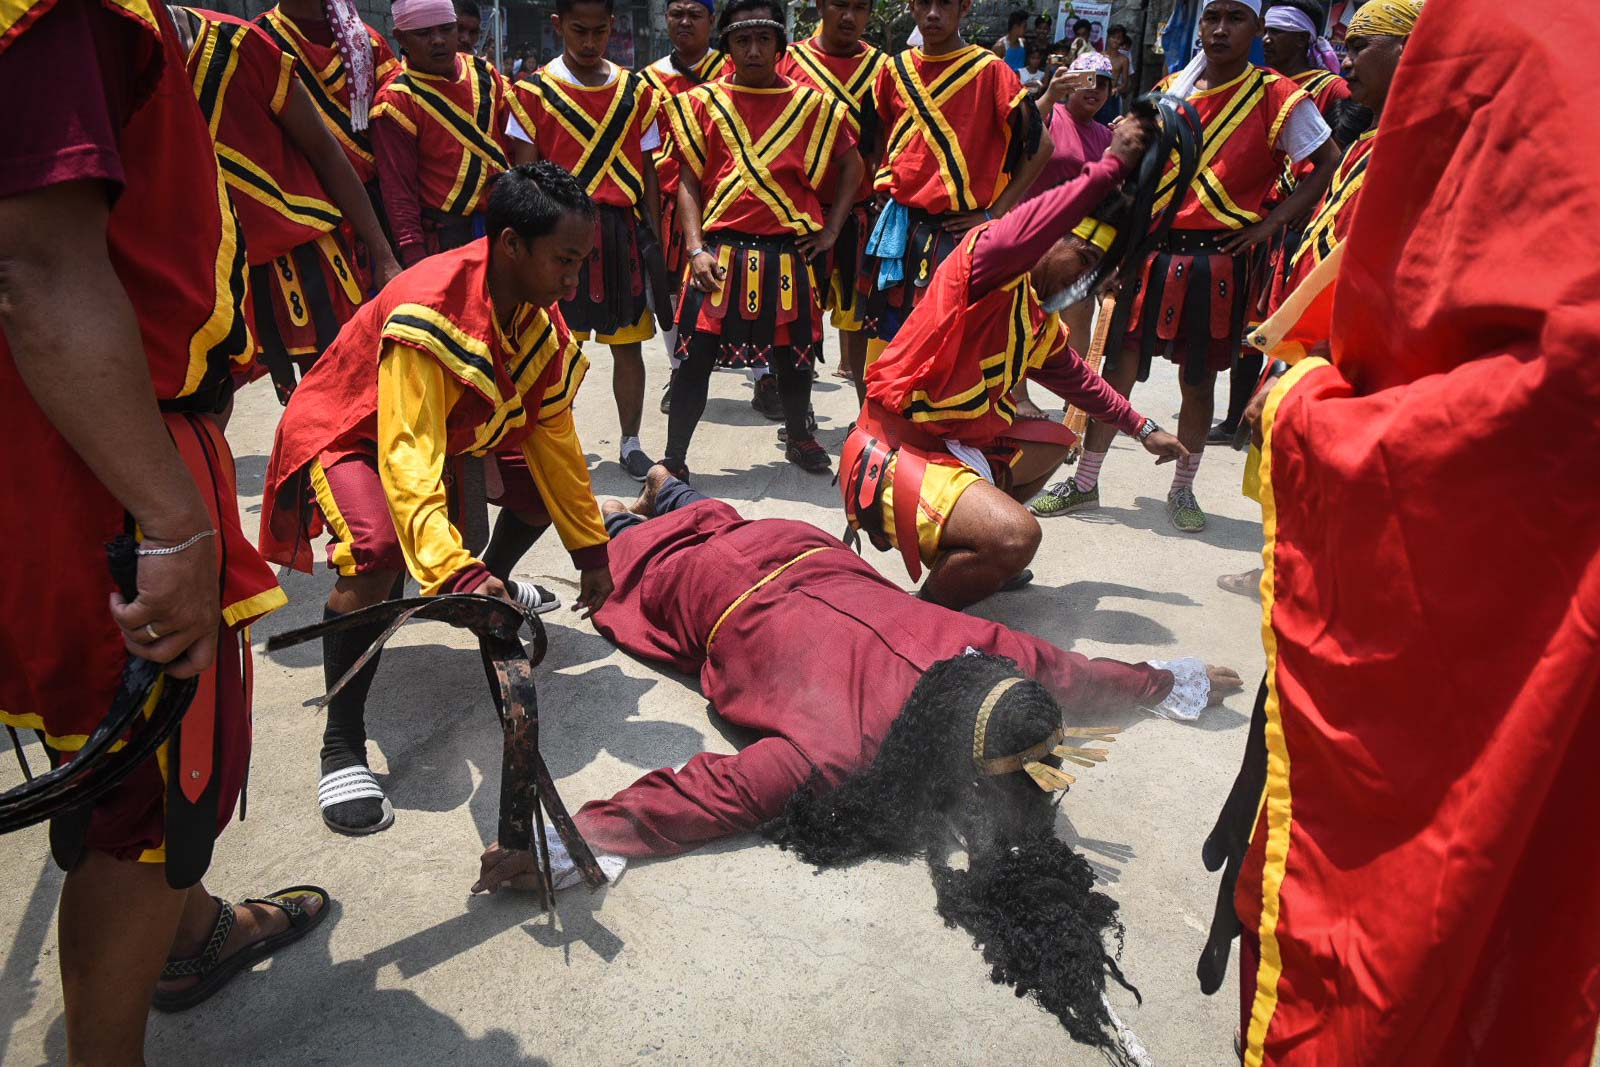 HUDYORES. Passion play Roman soldiers tkae turns in flogging and beating Marcelino before his crucifixion.